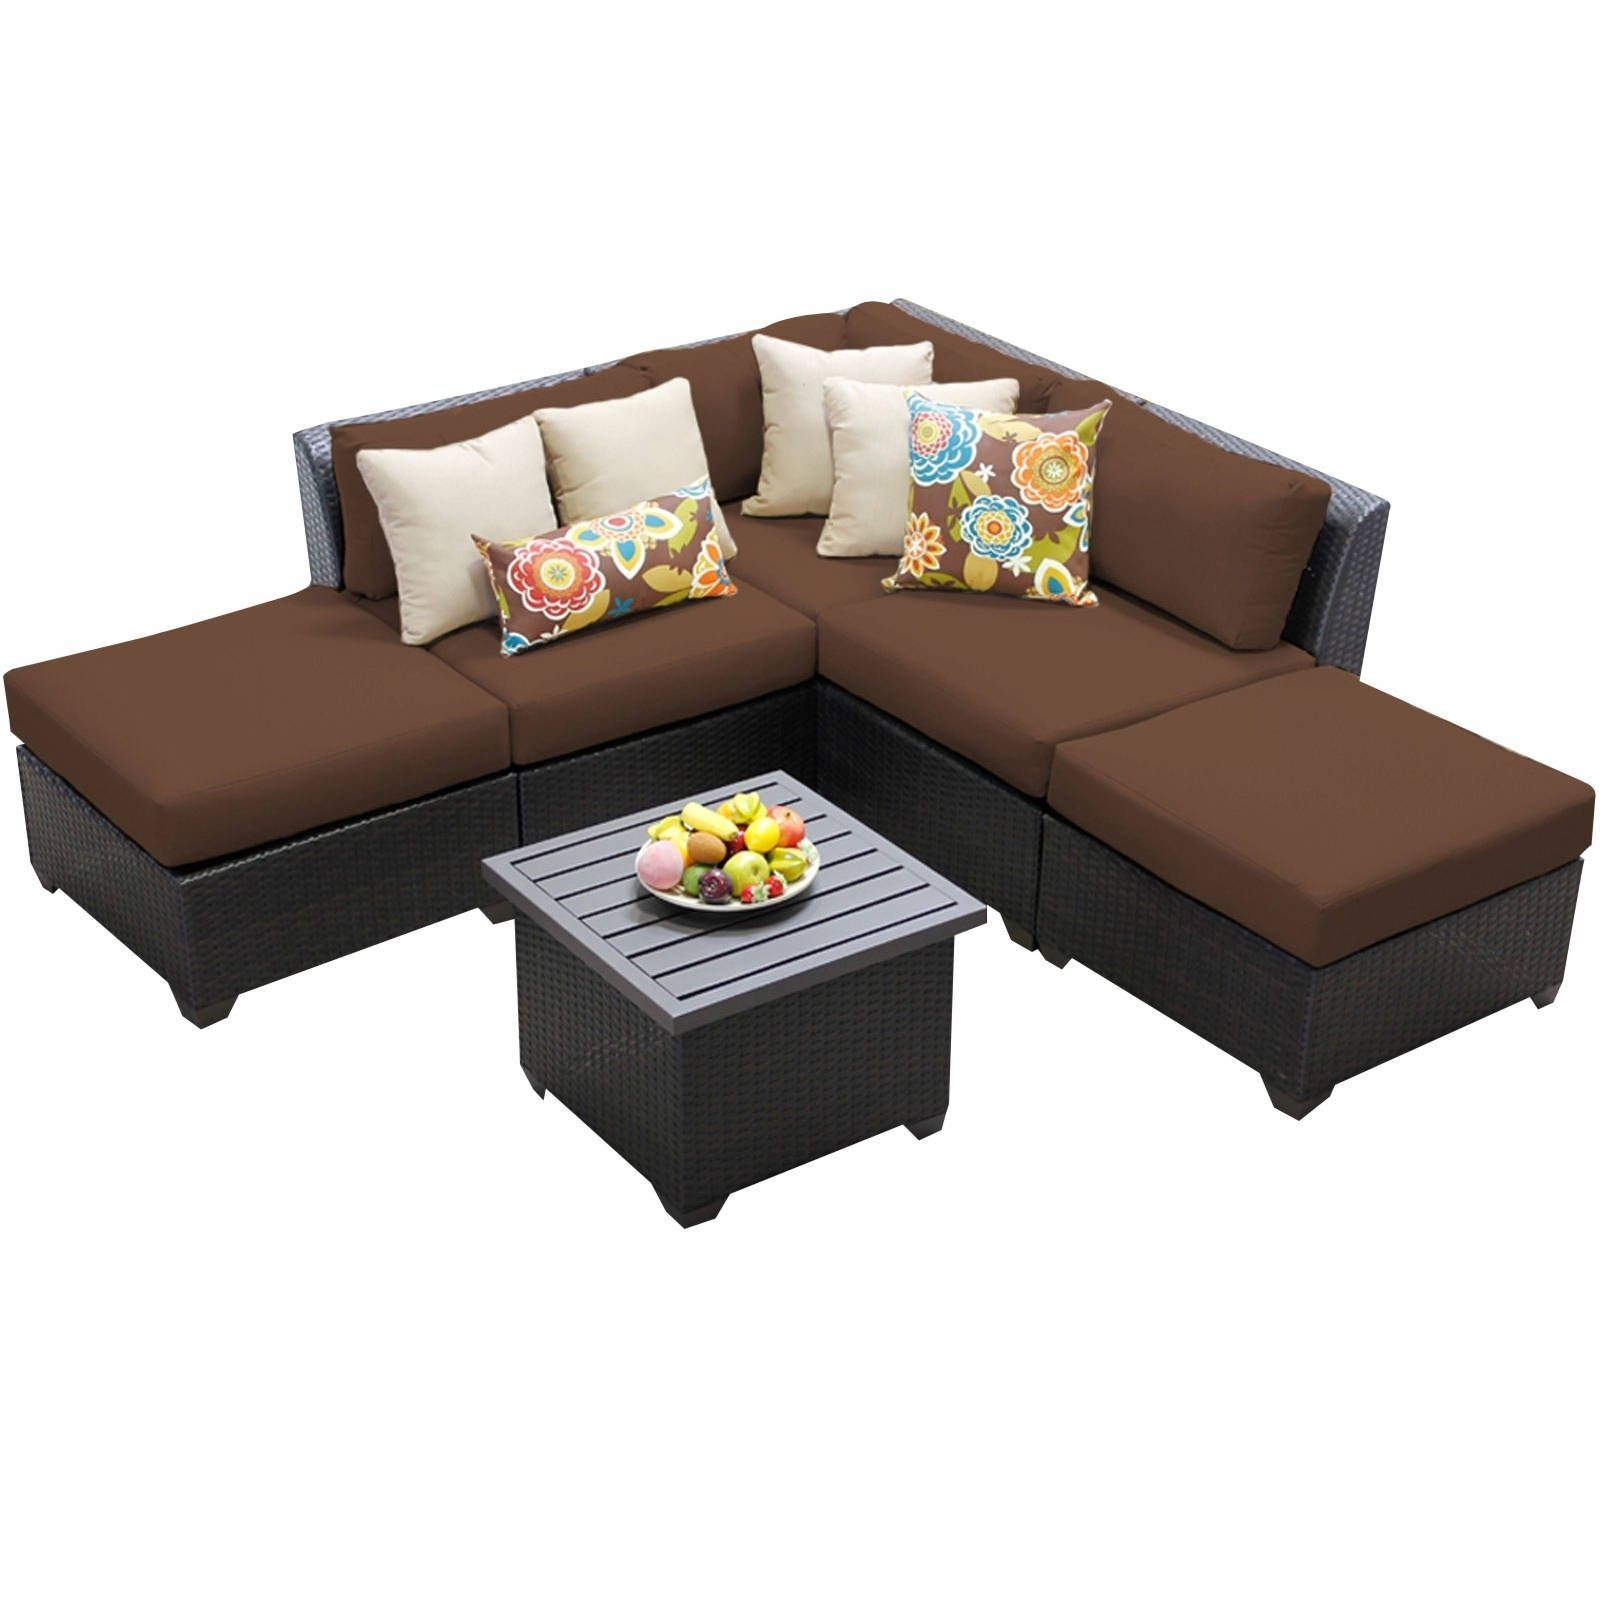 Meridian 6 Piece Outdoor Patio Wicker Lounge Set with Ottomans and End Table (Cocoa Brown), Size 6-Piece Sets, Patio Furniture (Acrylic)